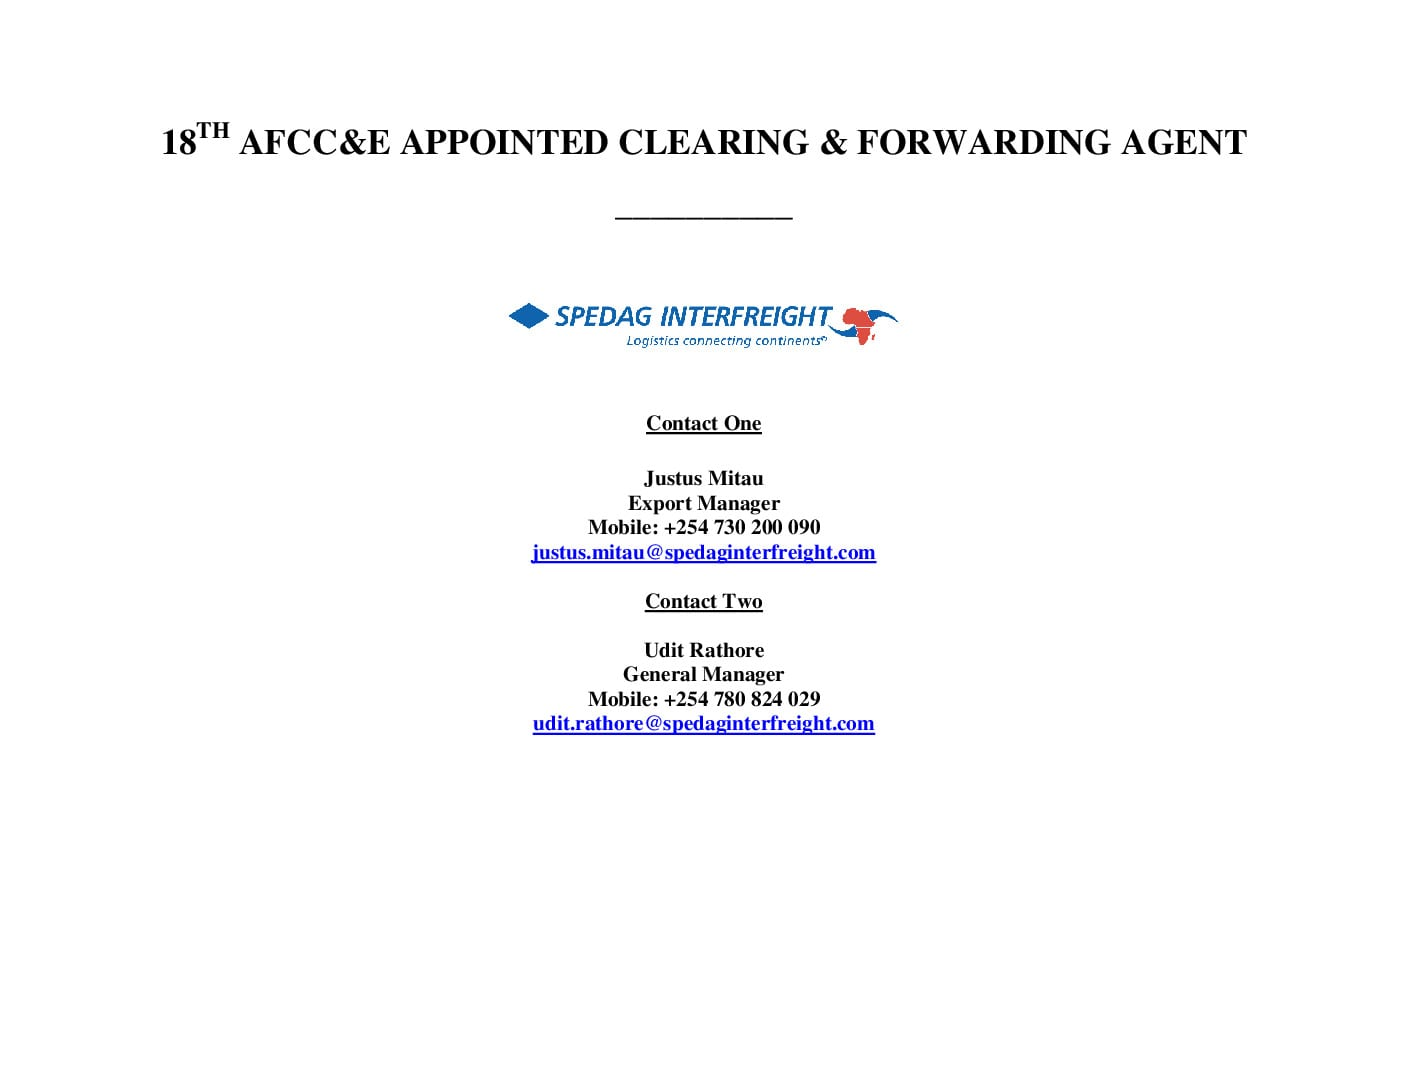 thumbnail of 18thAFCCEAppointed Clearing Forwarding Agent